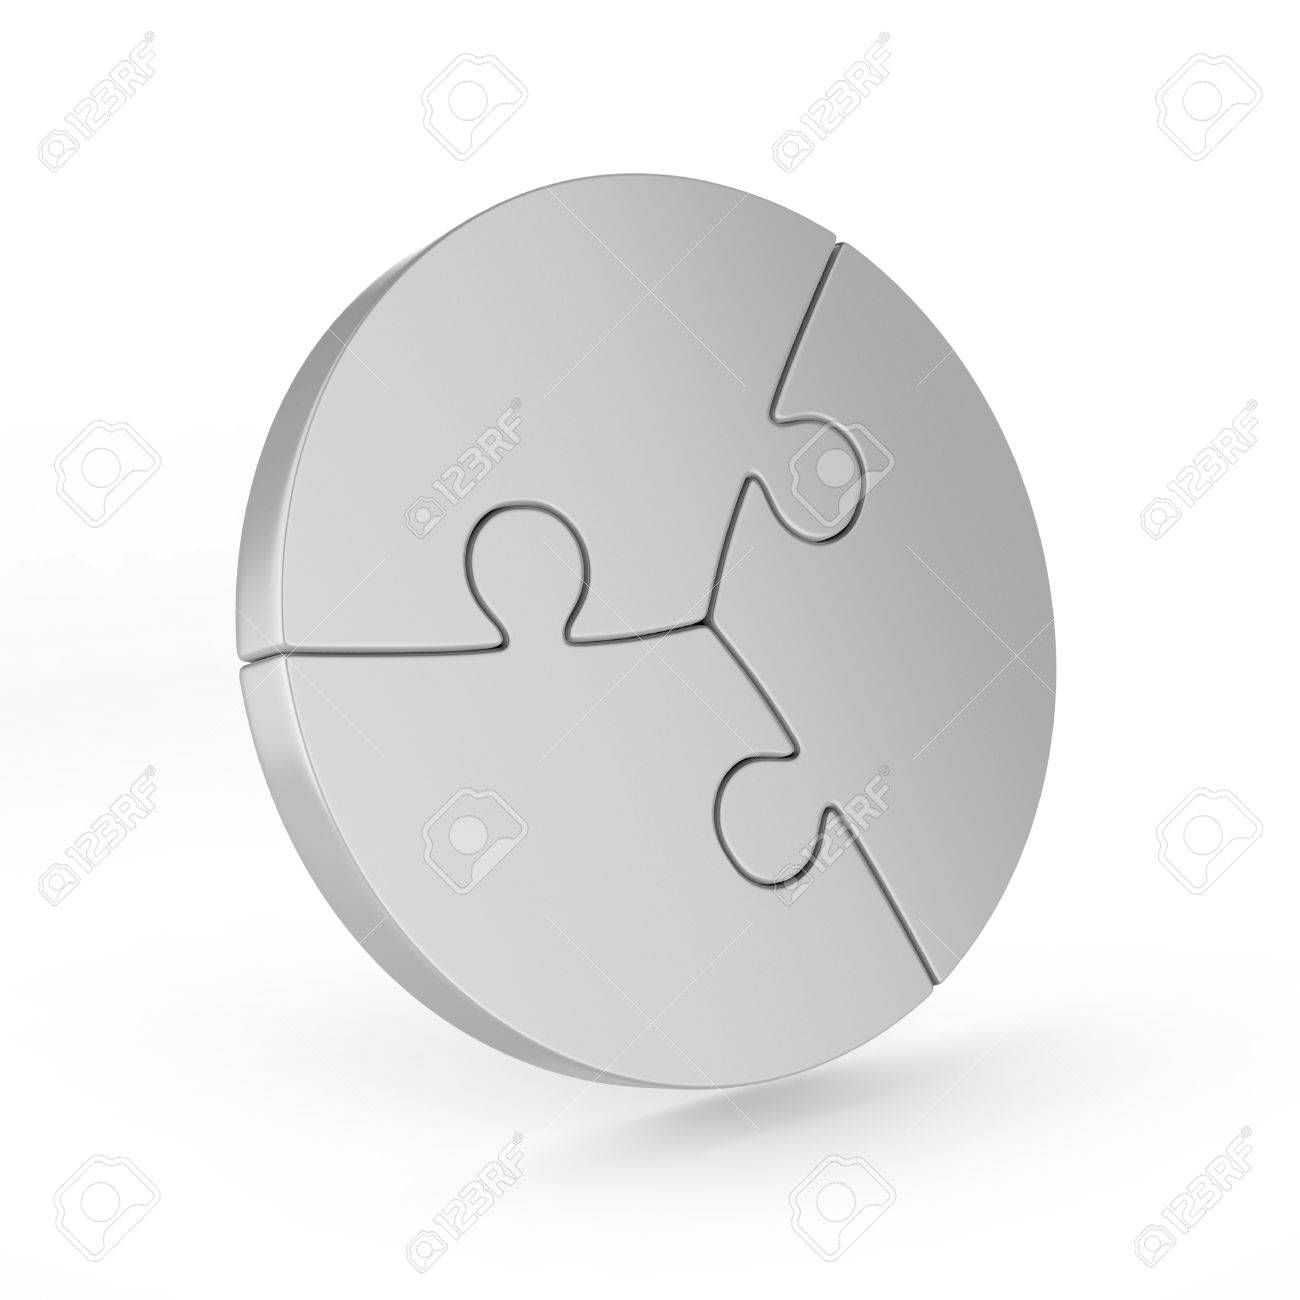 Three Piece Circular Puzzle Stock Photo, Picture And Royalty Free ...